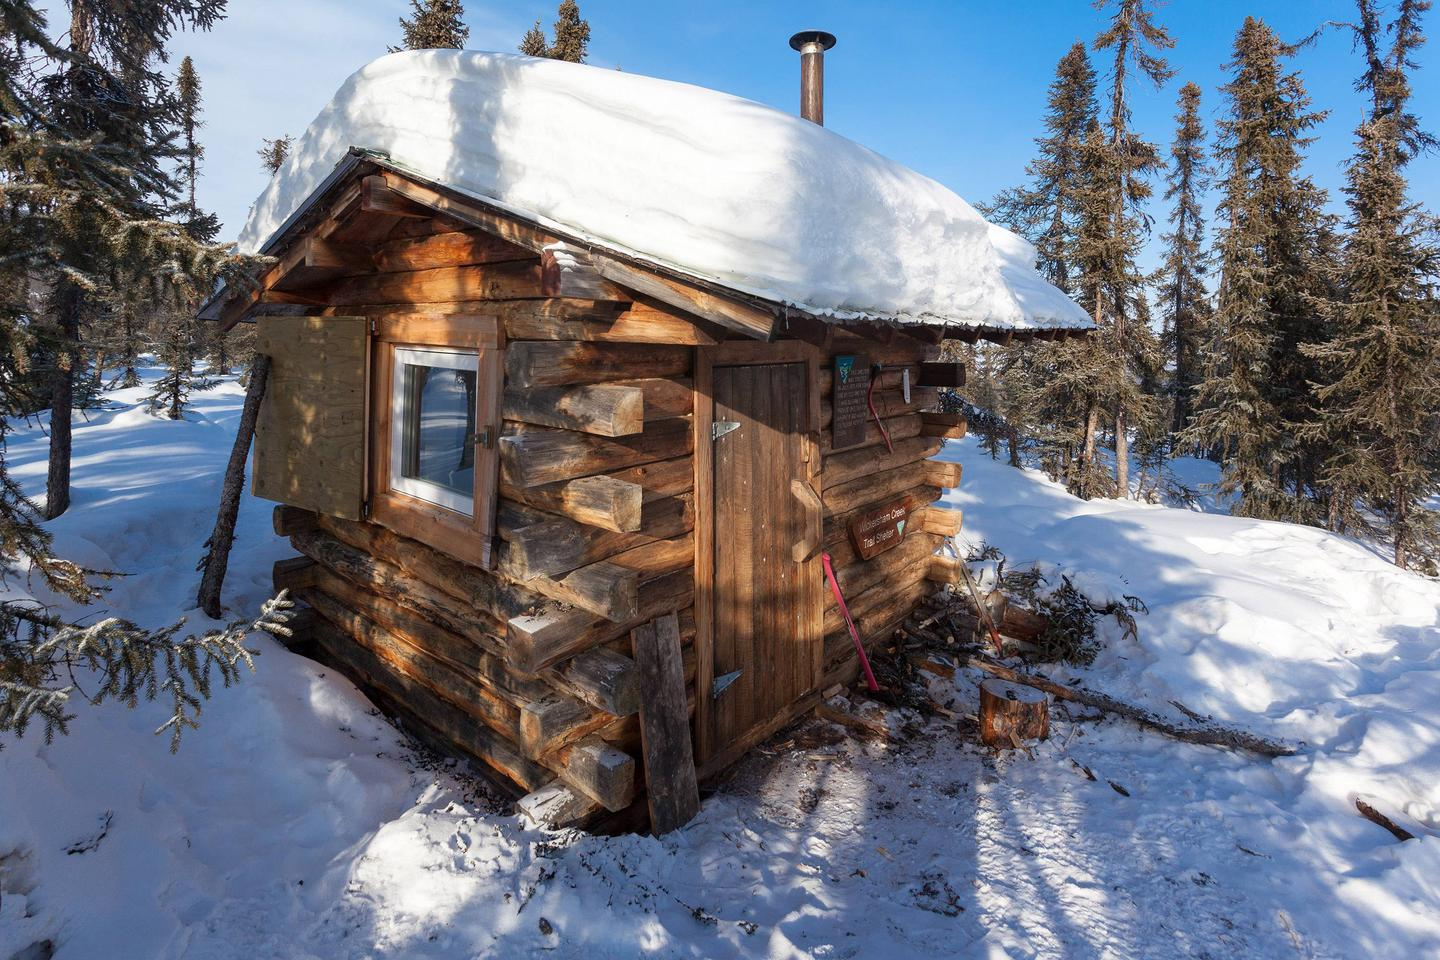 Side view of small cabin with snowy roofWickersham Creek Trail Shelter